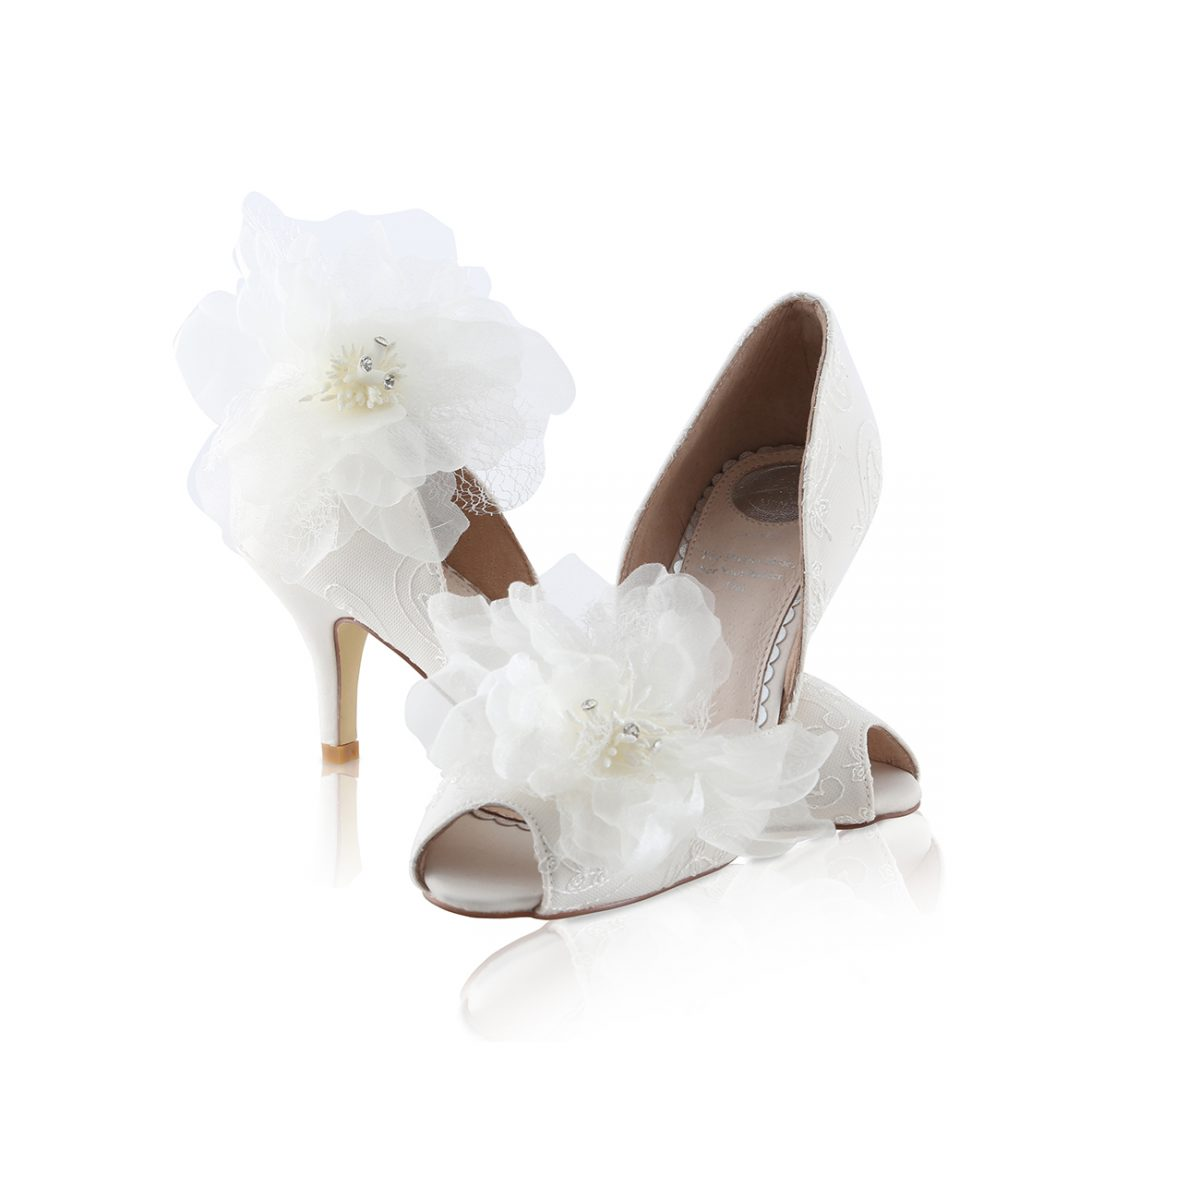 Perfect Bridal Corinne Shoes - Oyster